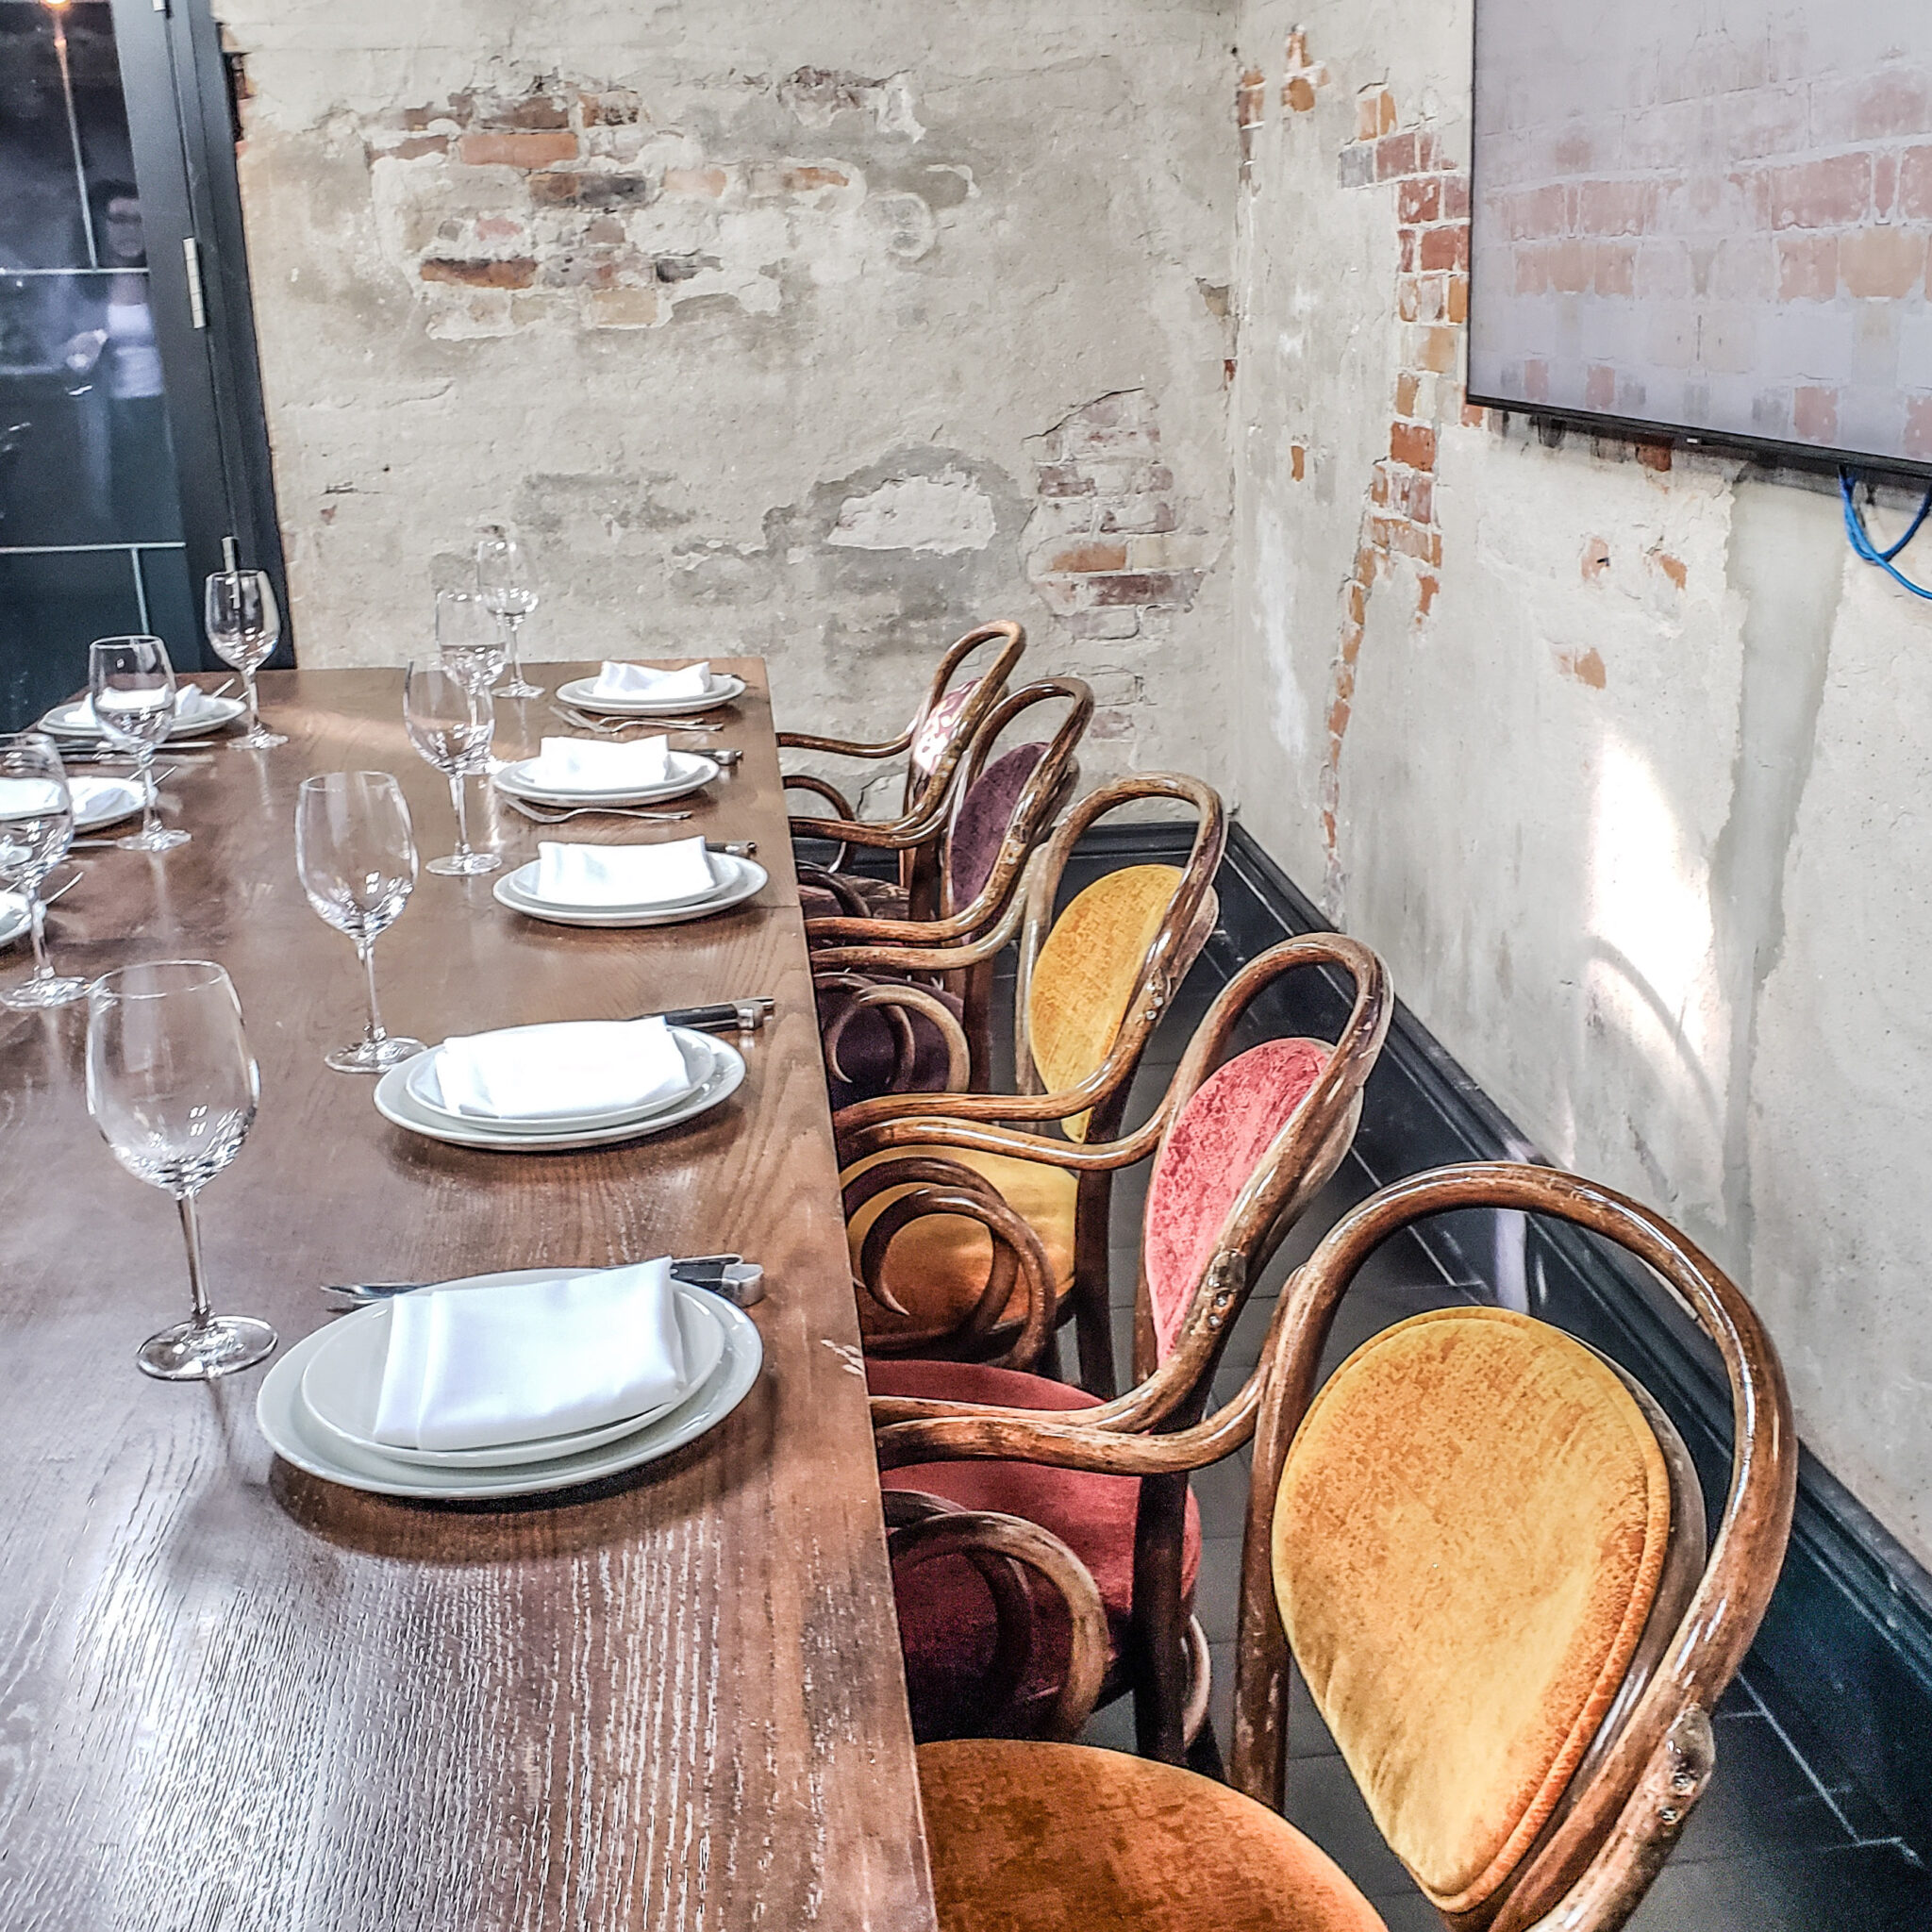 The Broadview Hotel - Broadview Hotel - Queen East - Toronto East - Toronto Life - Boutique Hotel - The Tower Seating